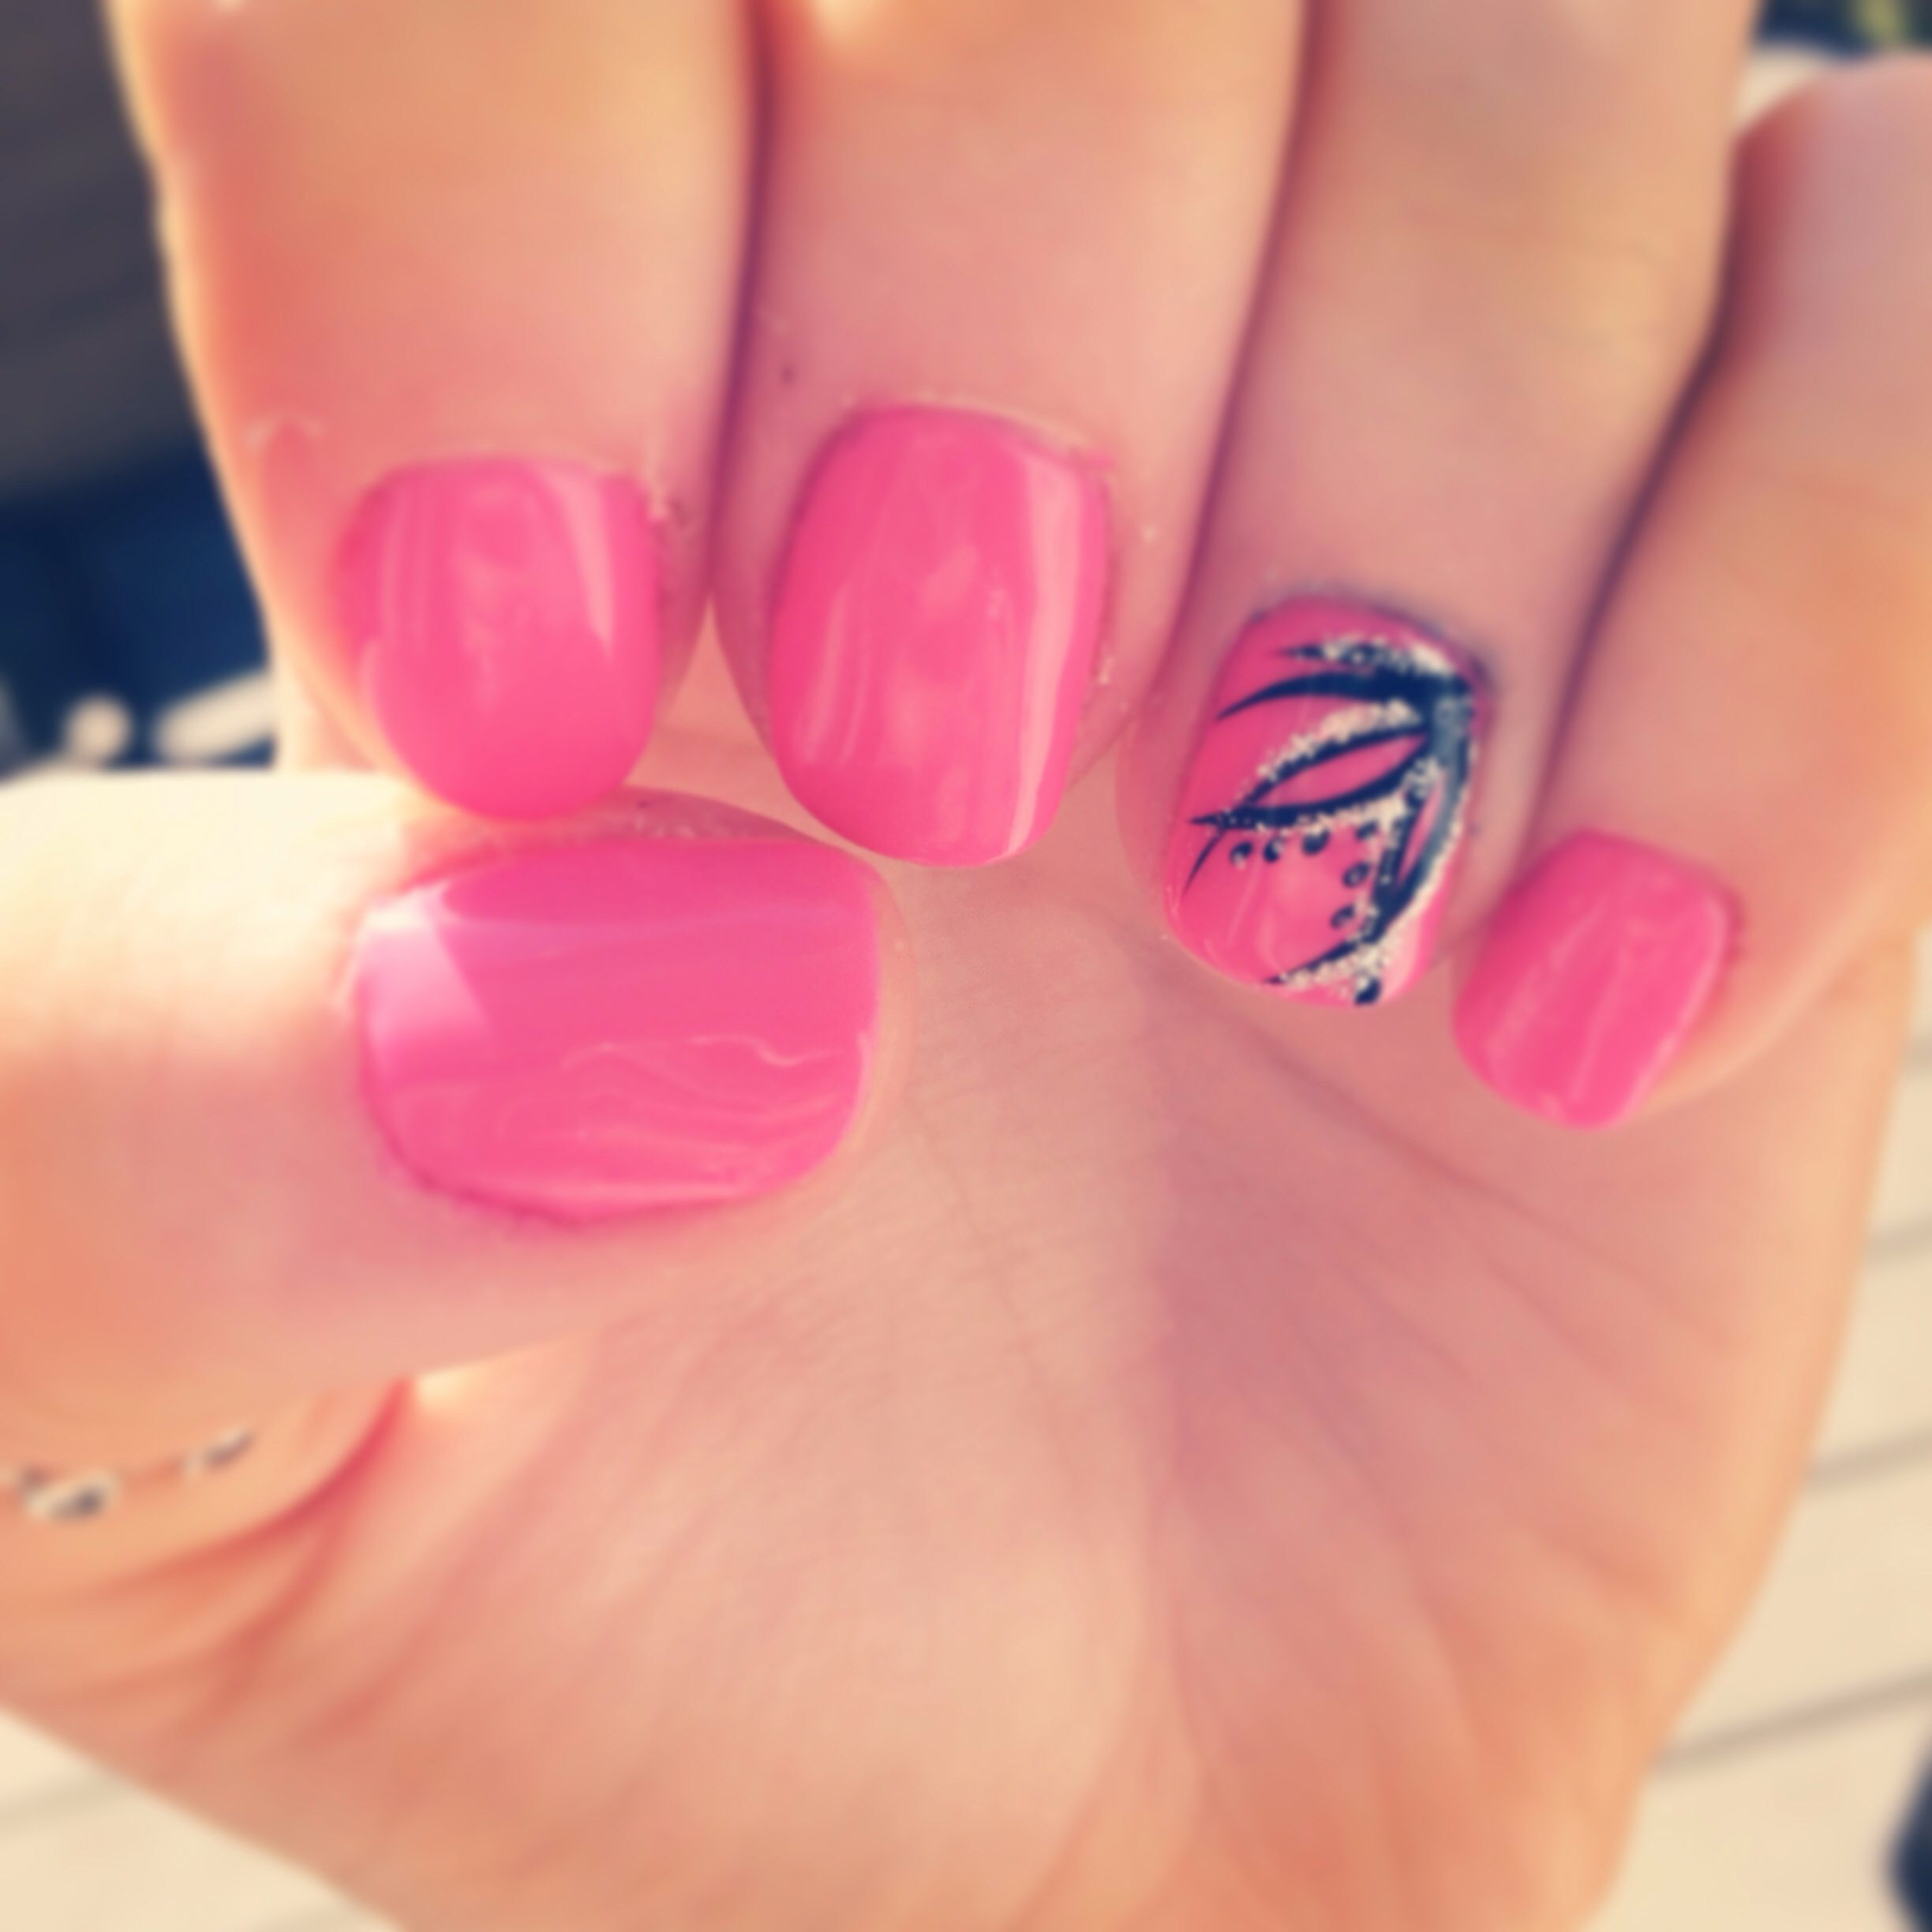 Pink Shellac Nails With Line Design Nail Creations Pinterest